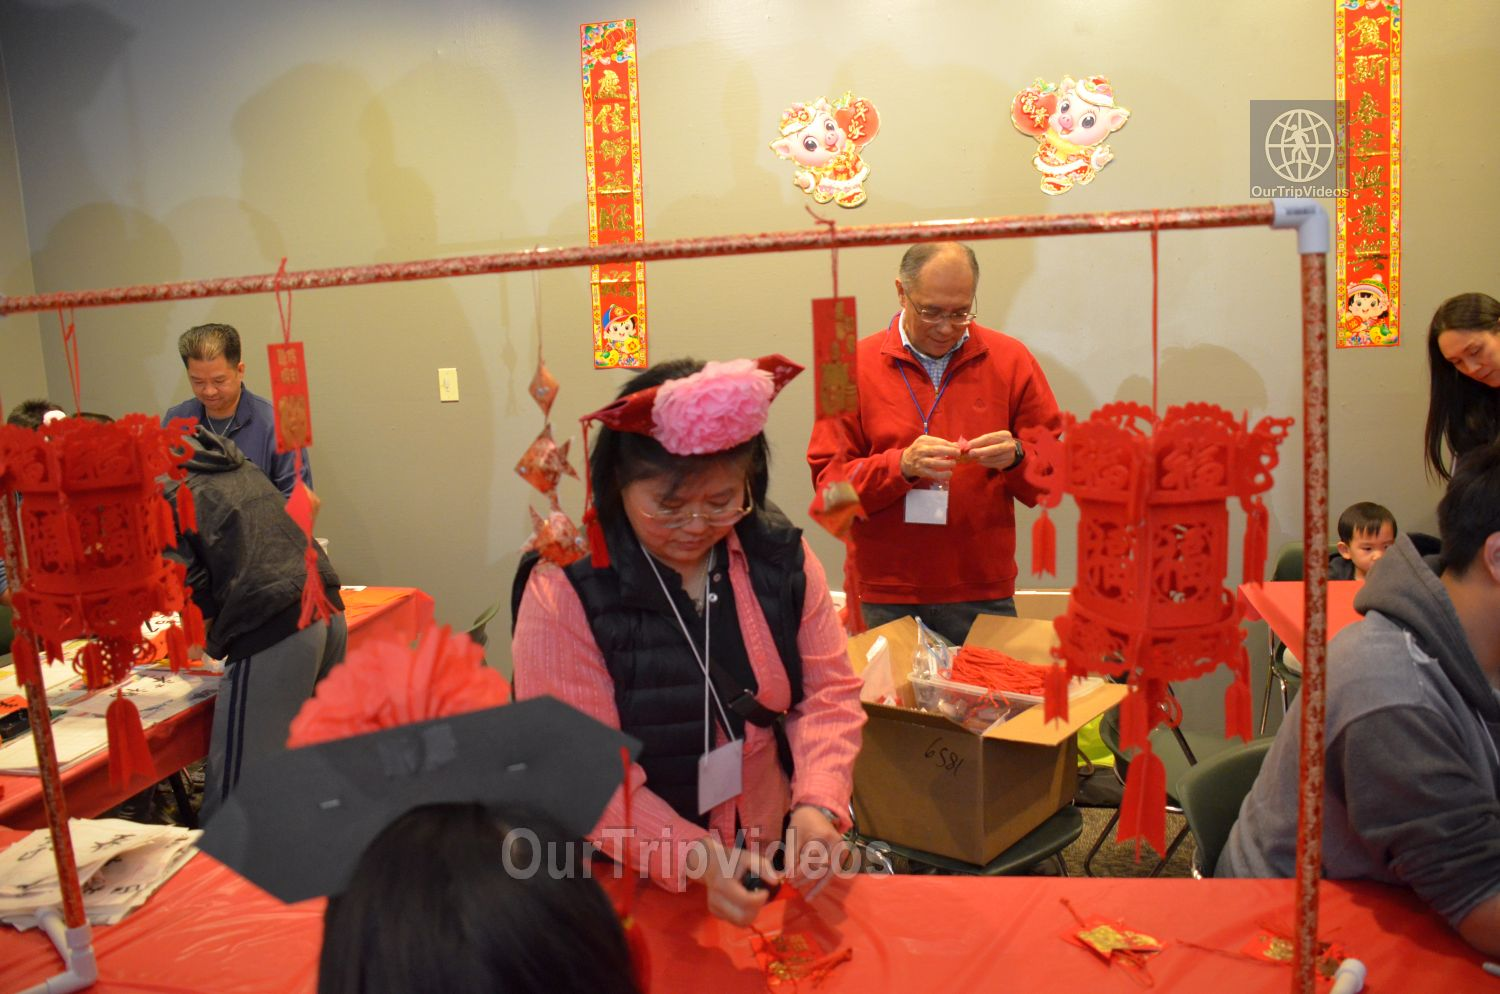 Chinese Lunar New Year Celebration, Milpitas, CA, USA - Picture 3 of 25